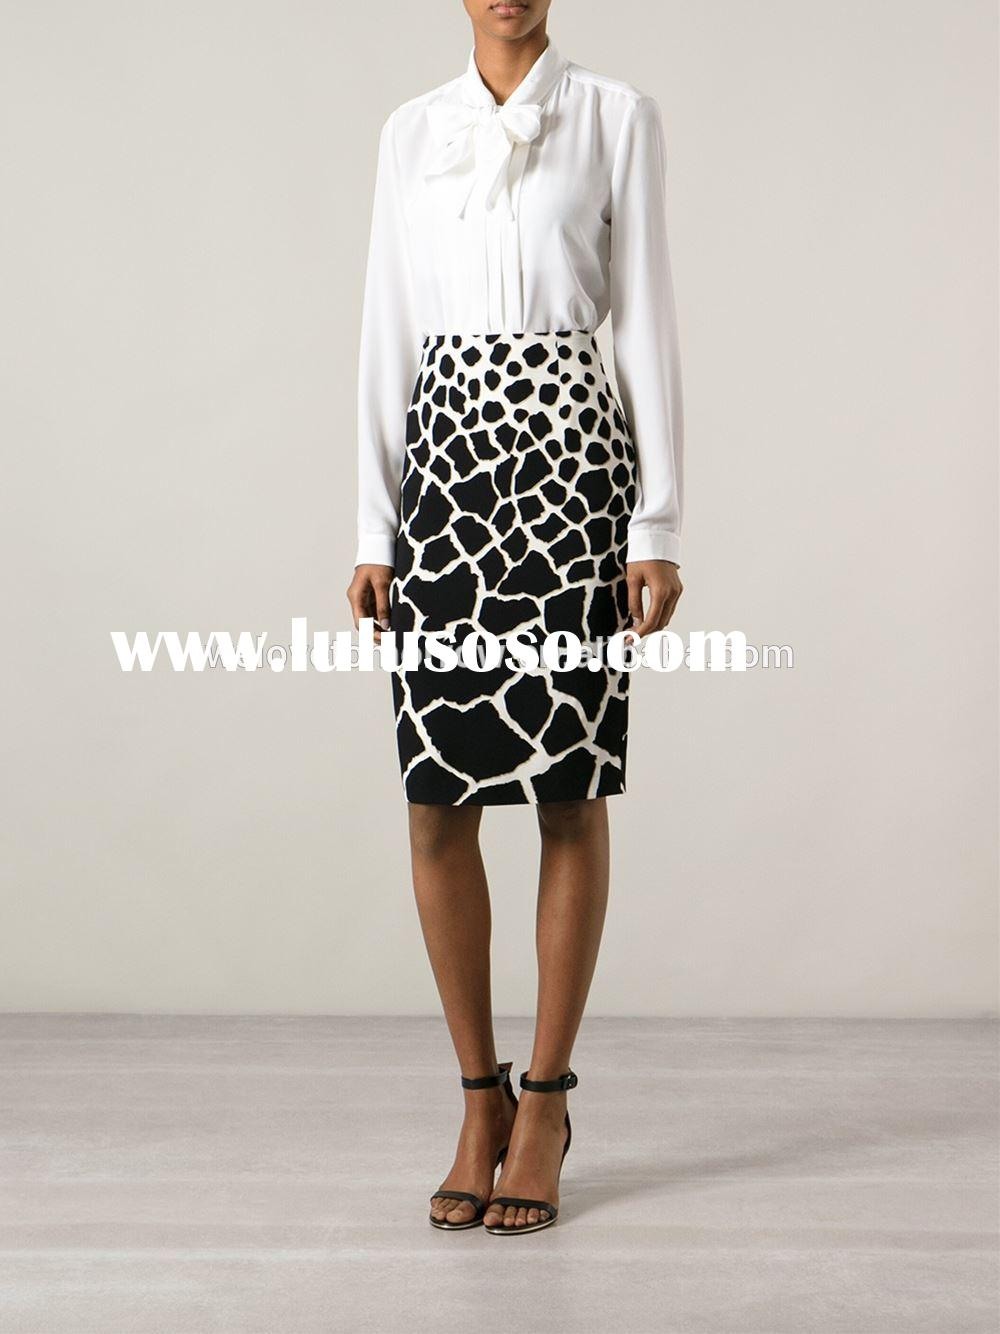 Black and white print pencil leopard skirt,models straight skirt, sample office uniform designs (TW0